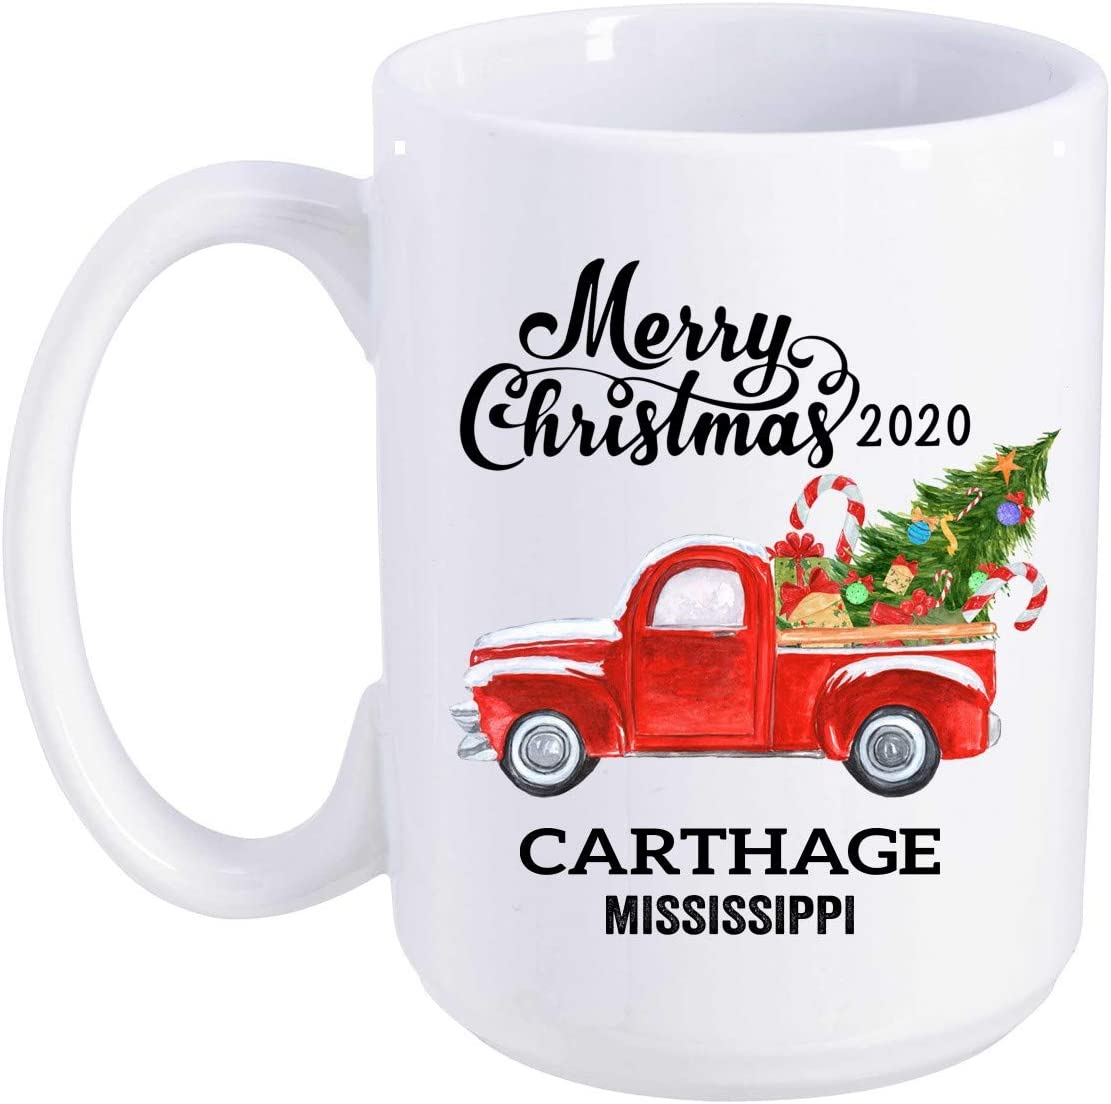 When Is The Carthage Christmas In 2020 Amazon.com: Carthage Mississippi State Family New Home Mug 2020